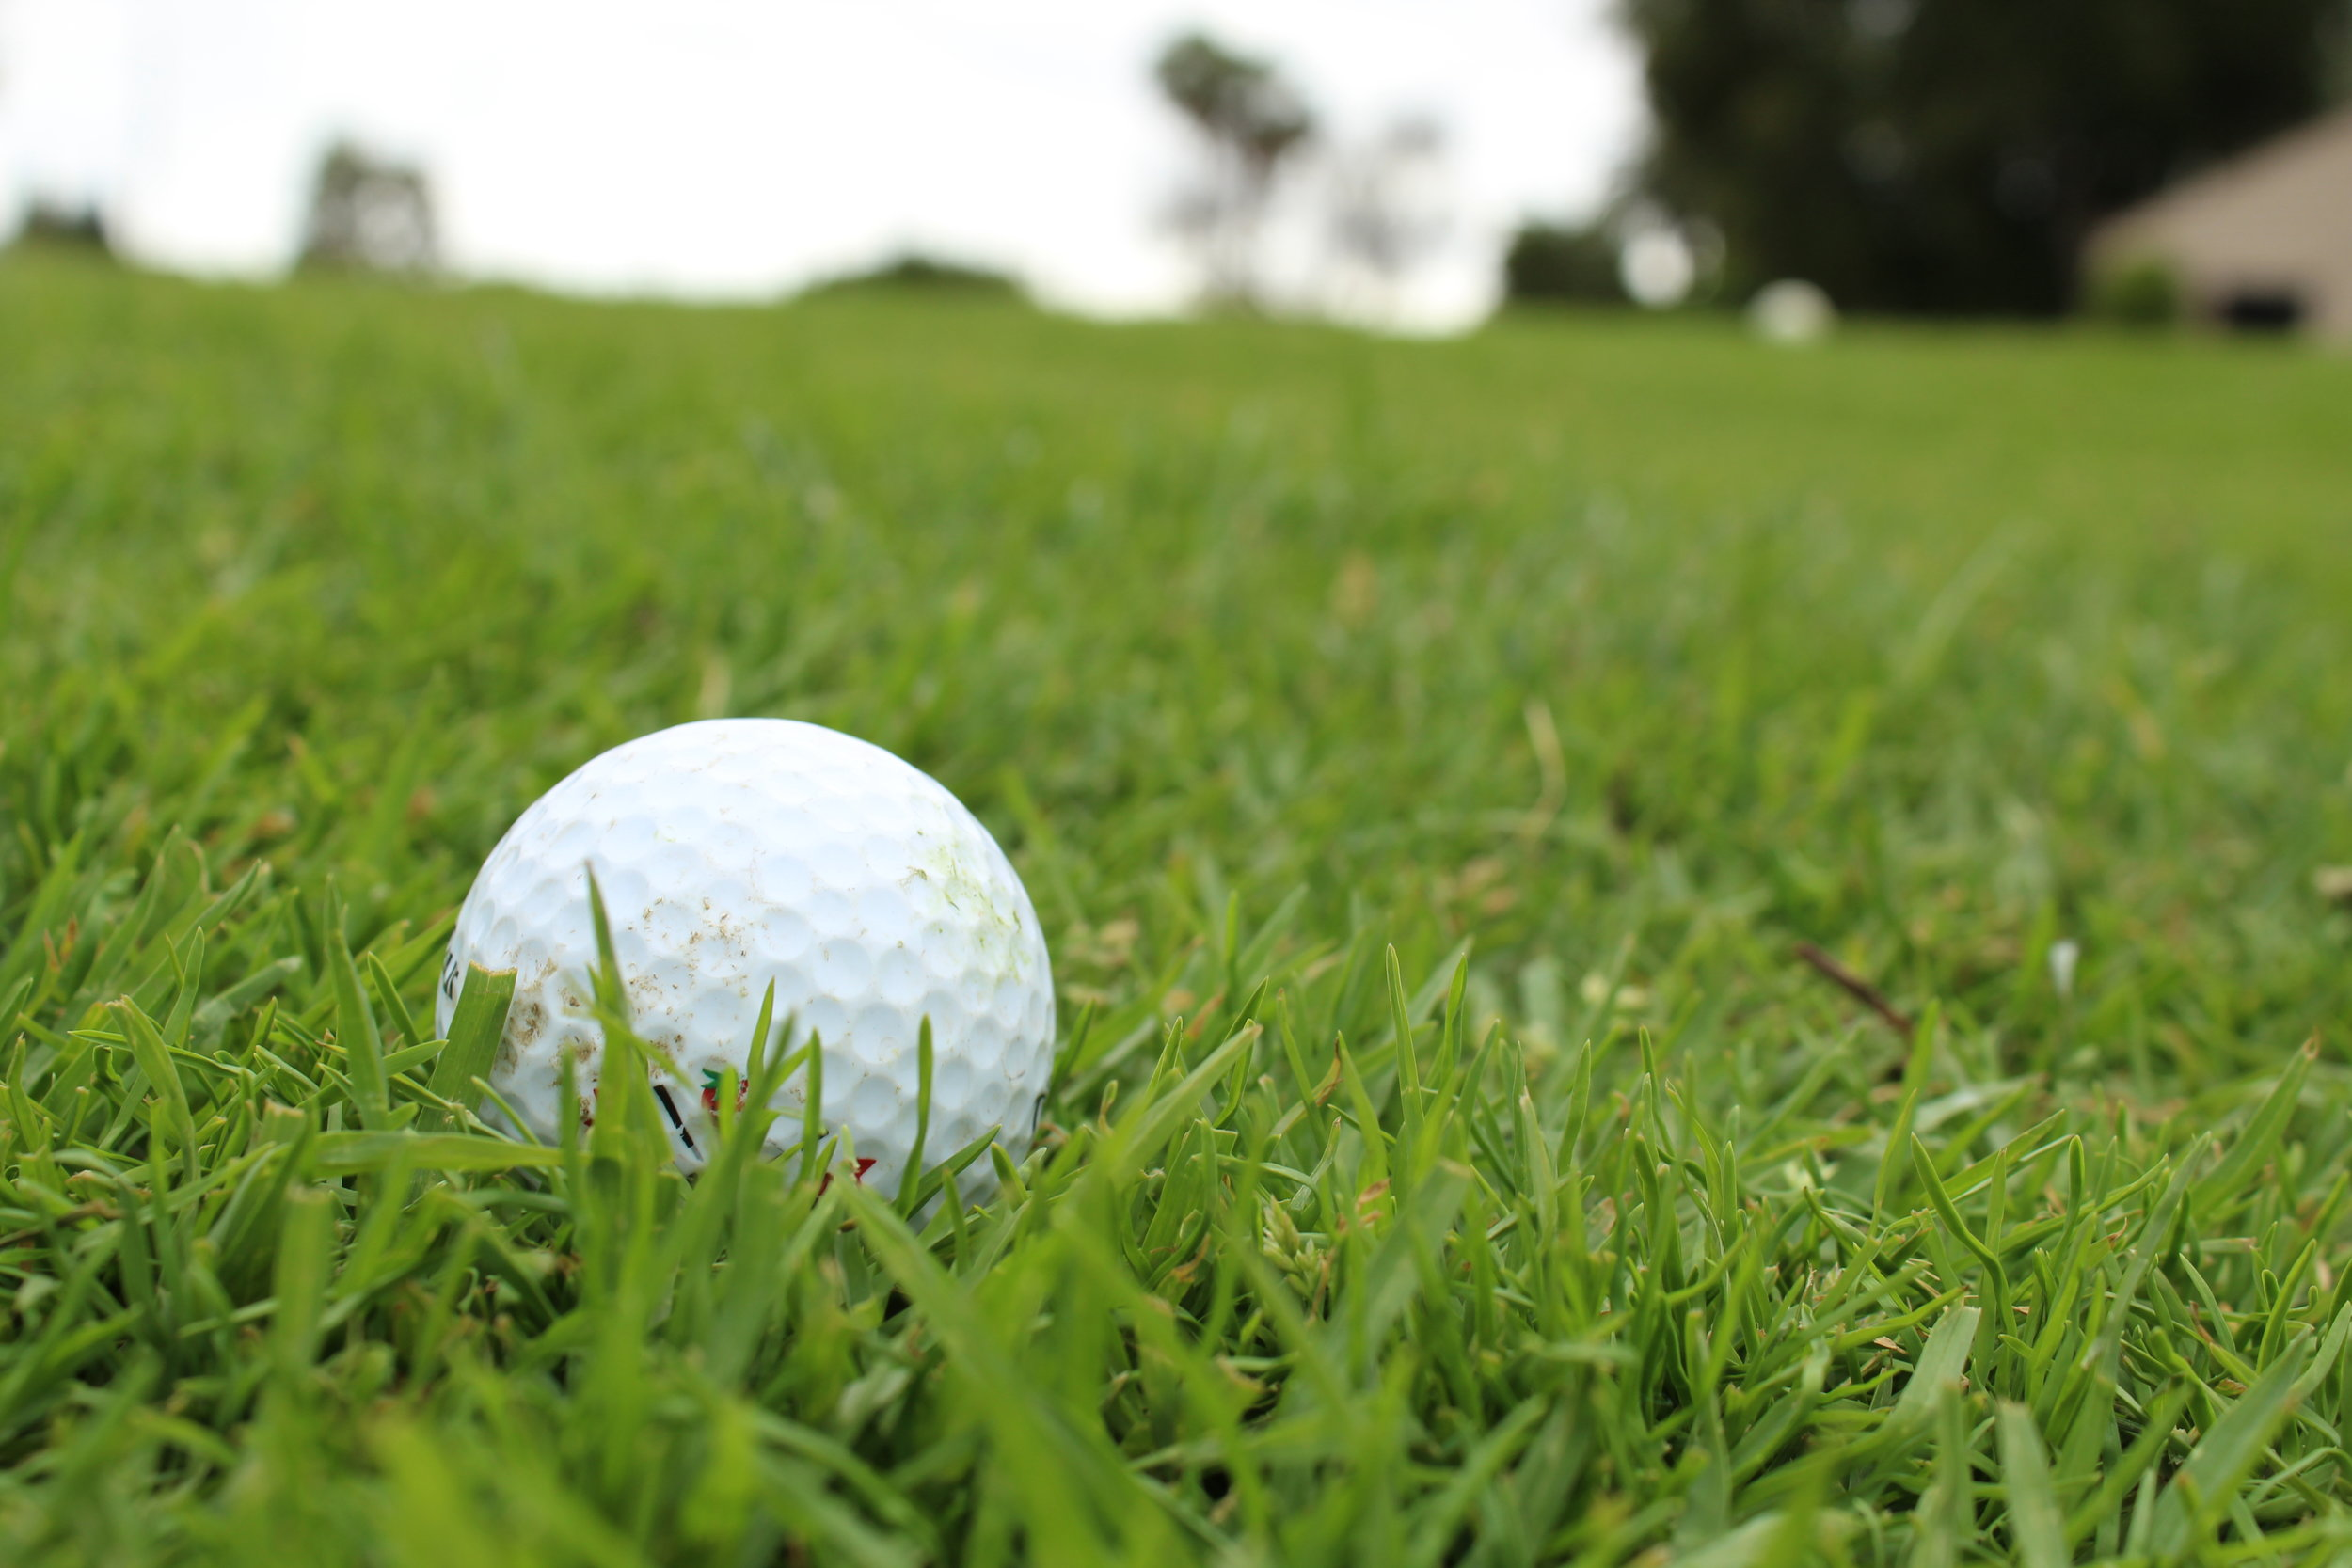 GGCF/Chamber Golf Classic - It's not too late, register now!